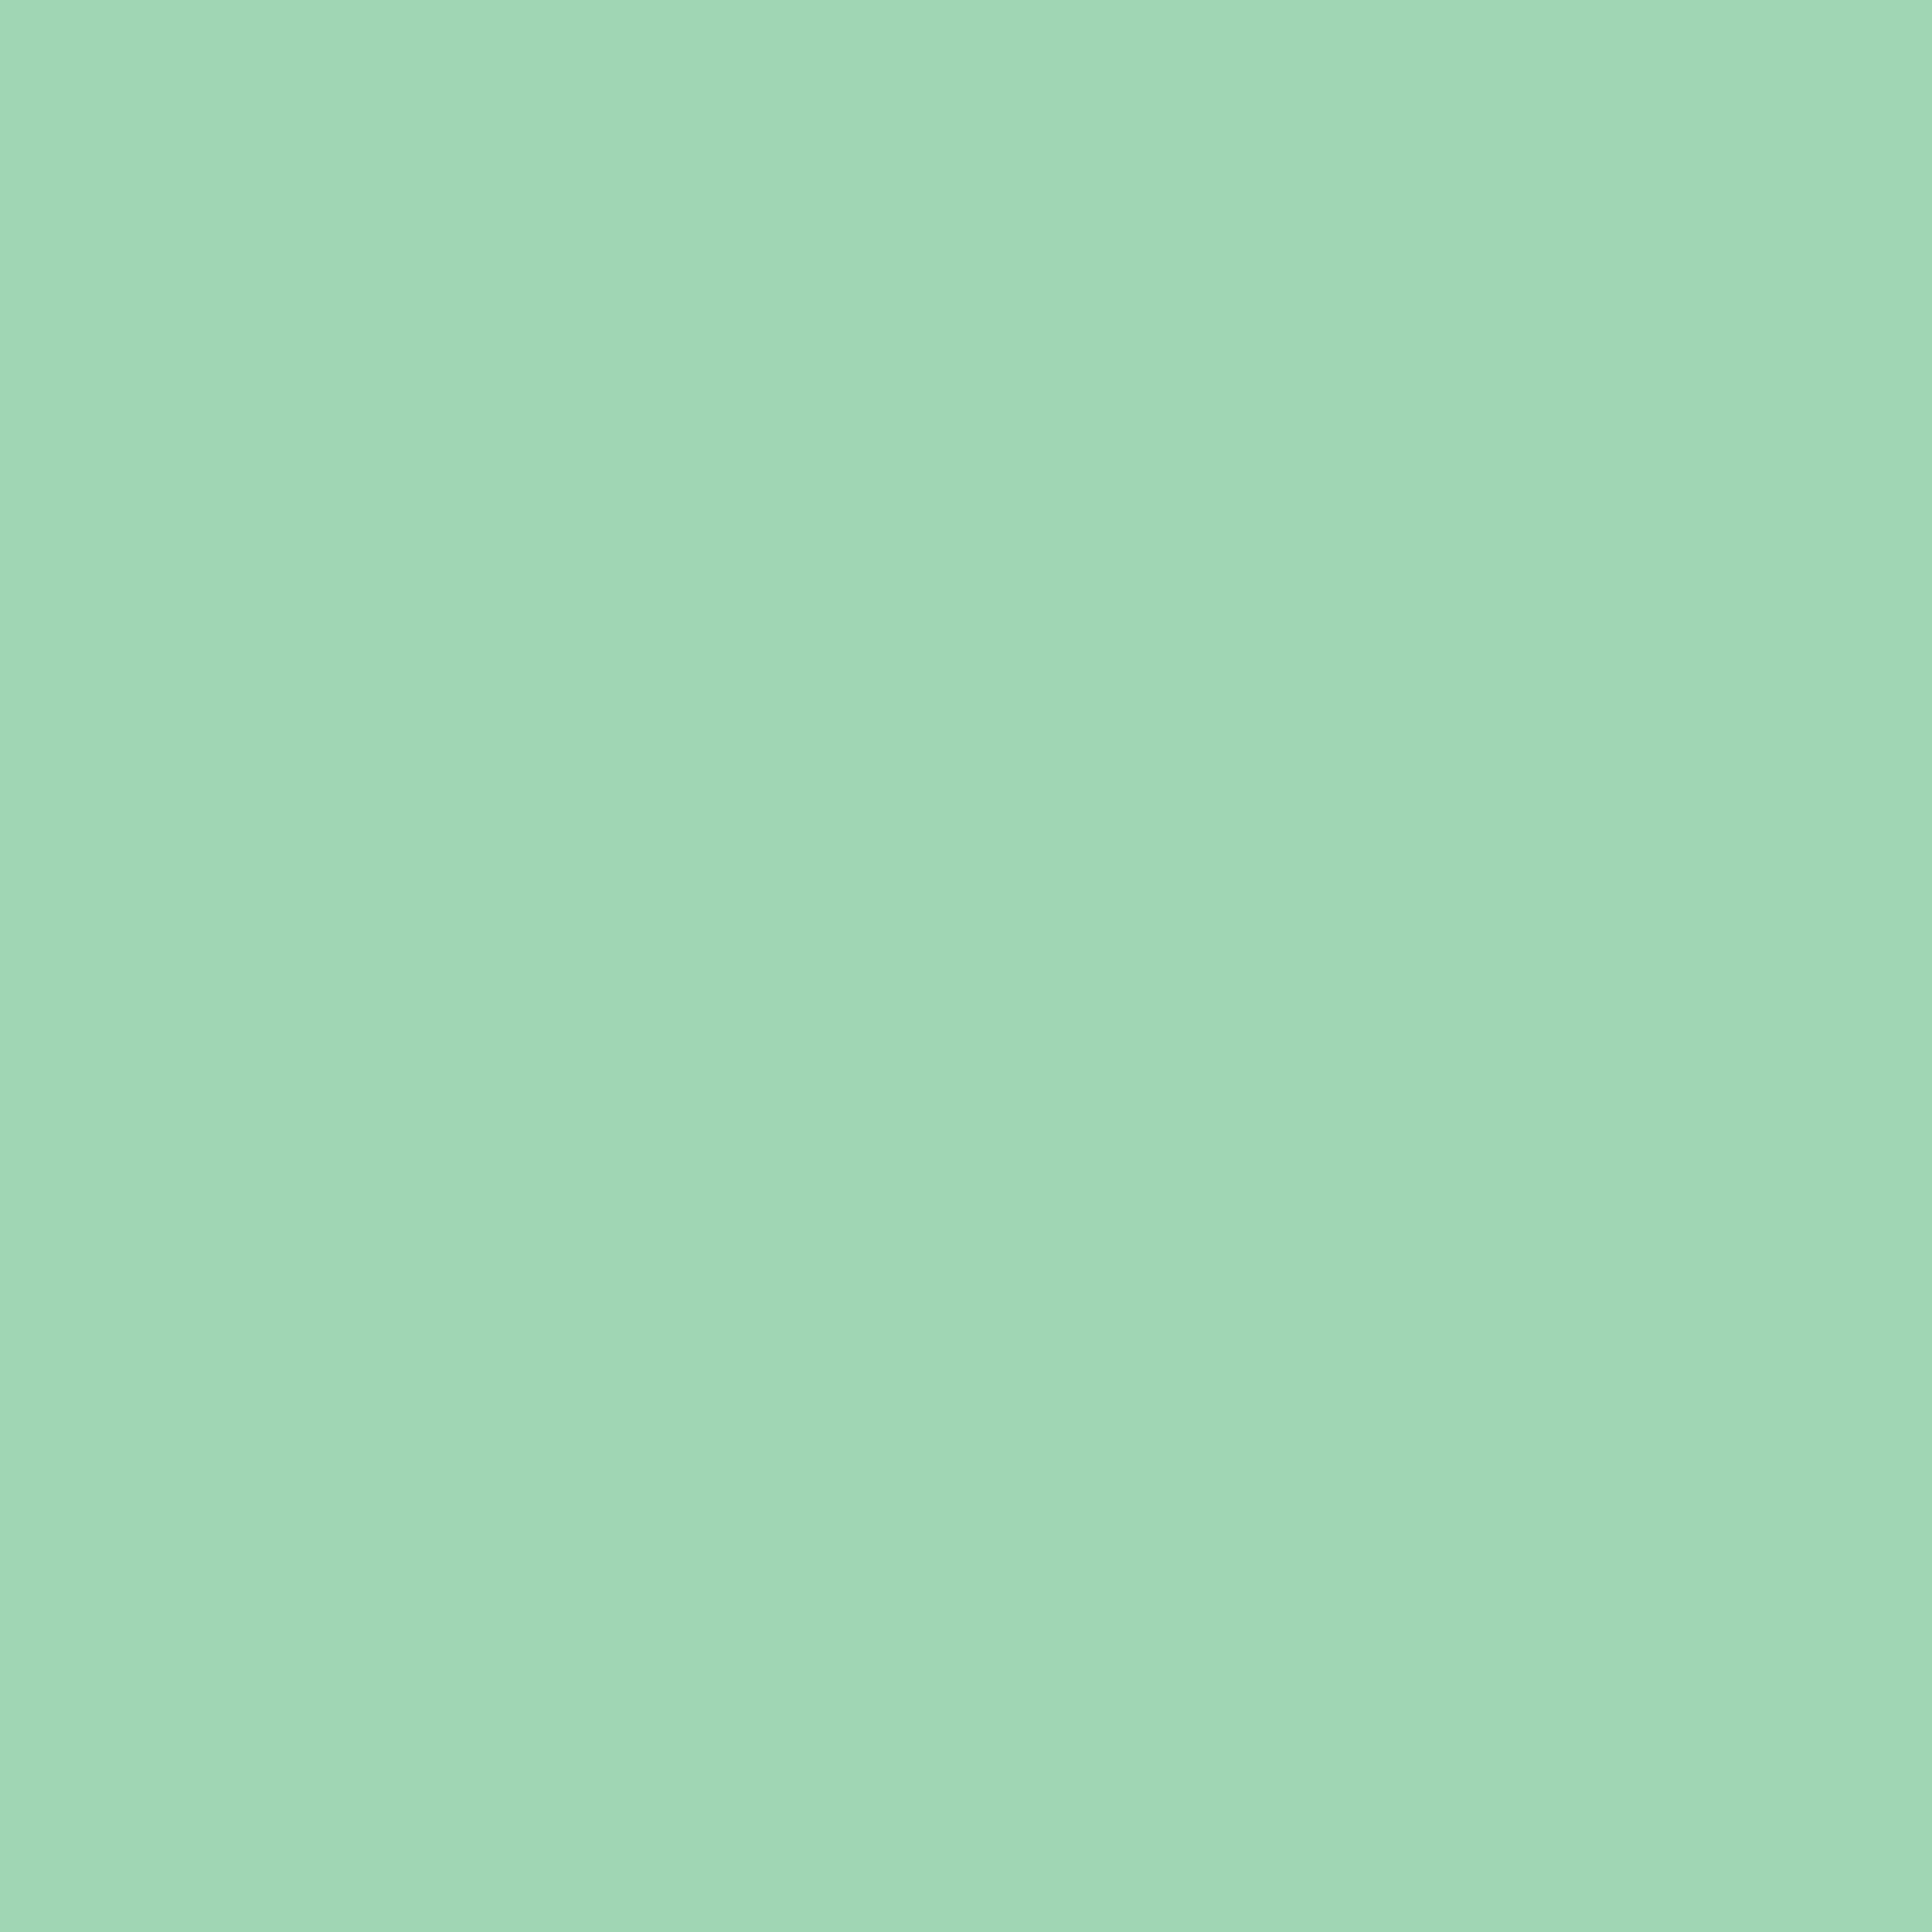 3600x3600 Turquoise Green Solid Color Background